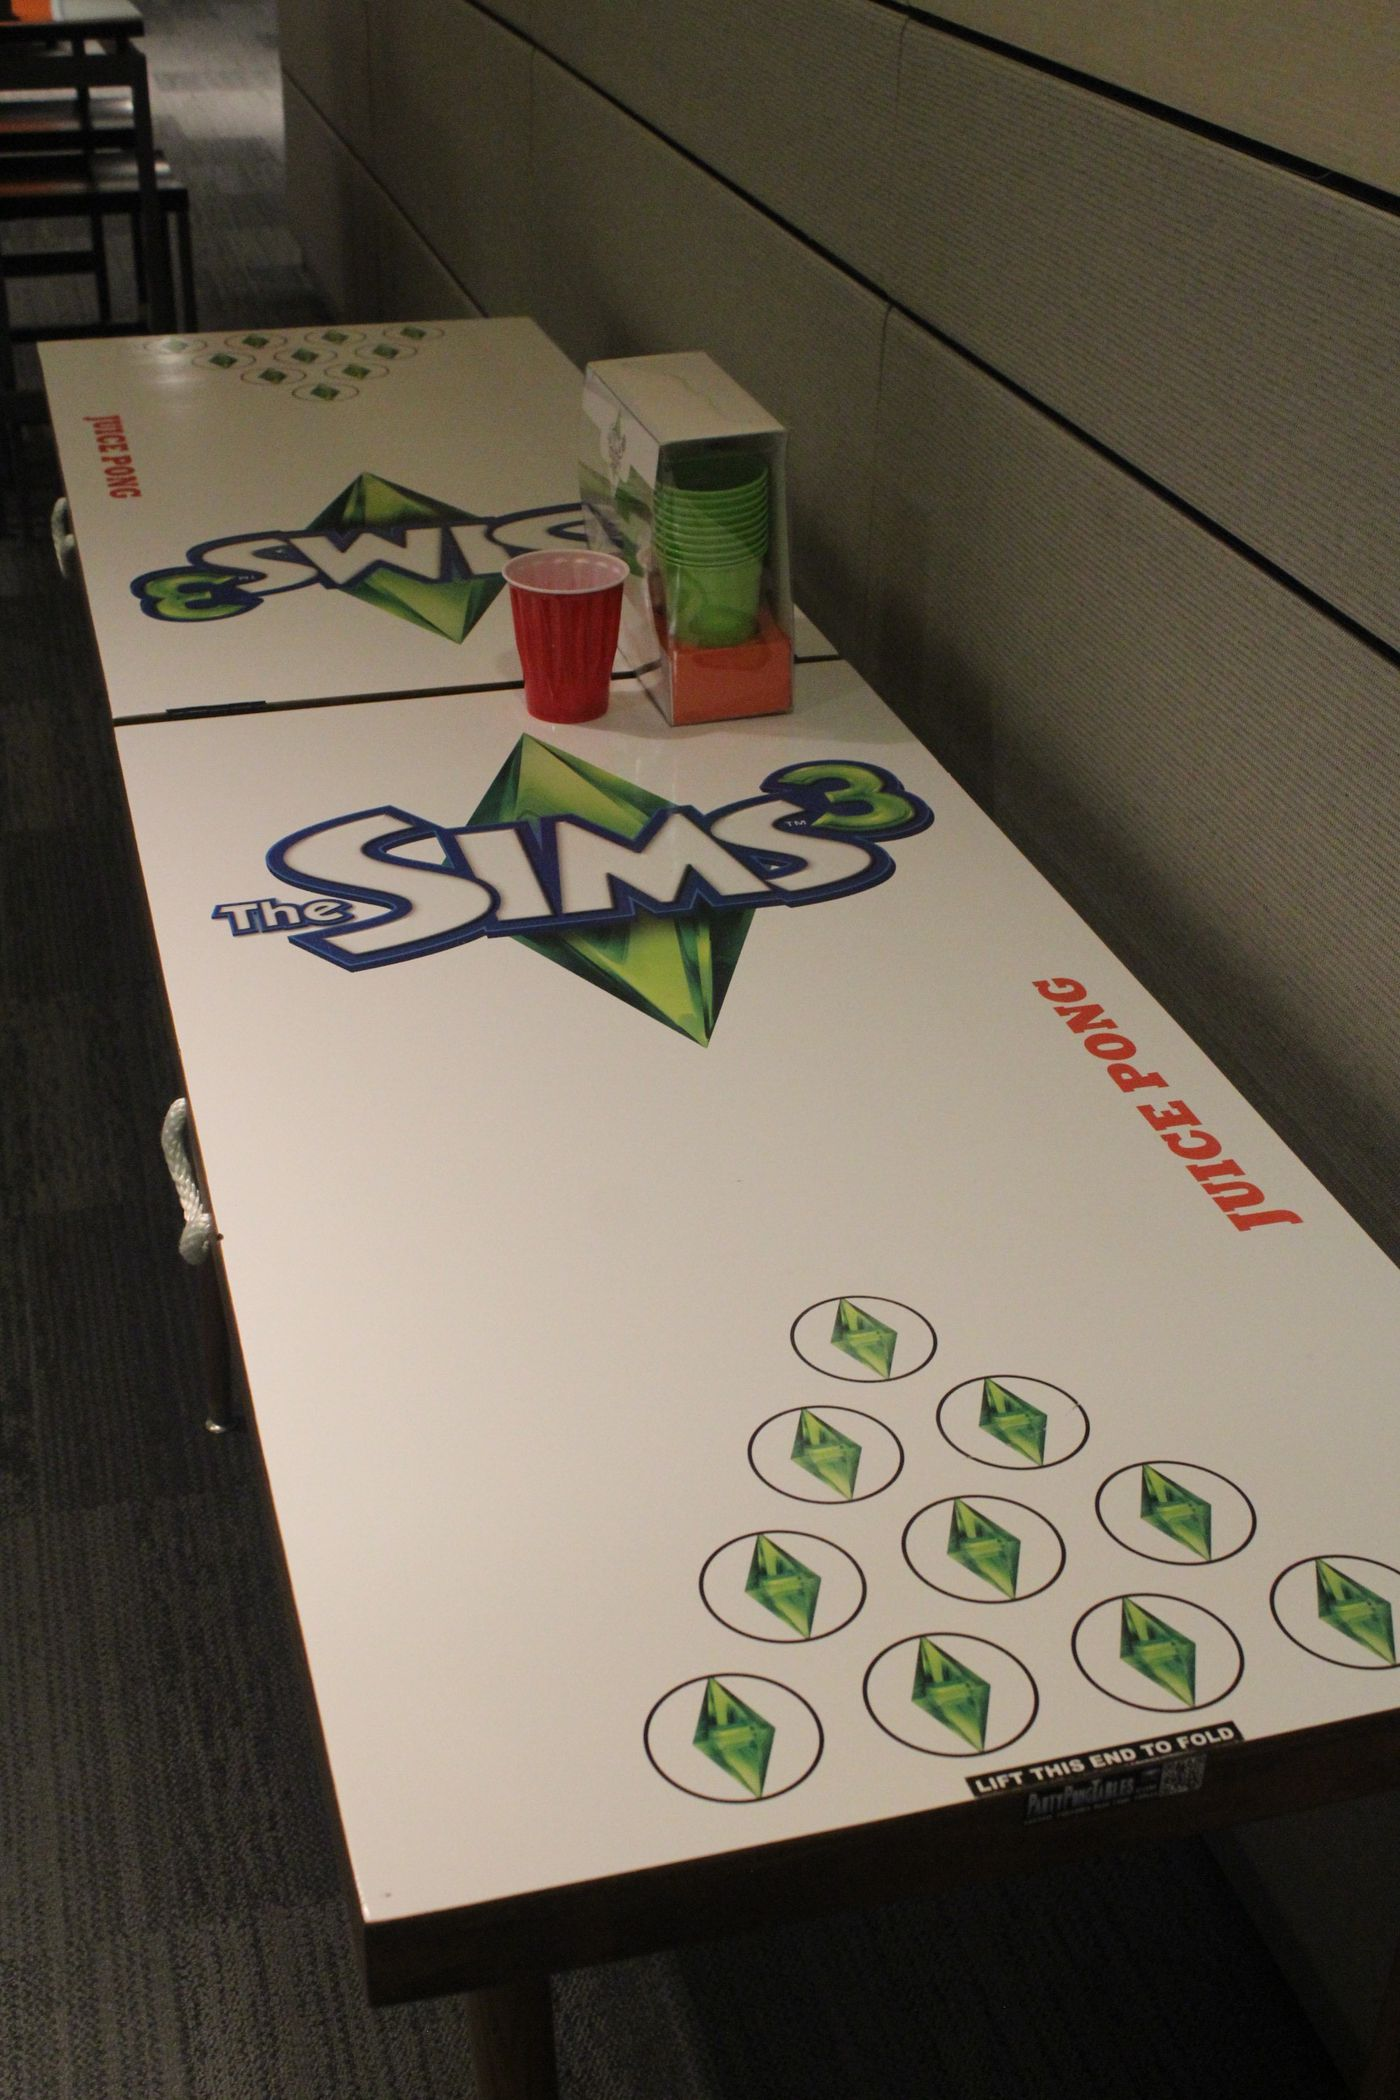 The Sims Turns 20 Years Old Polygon